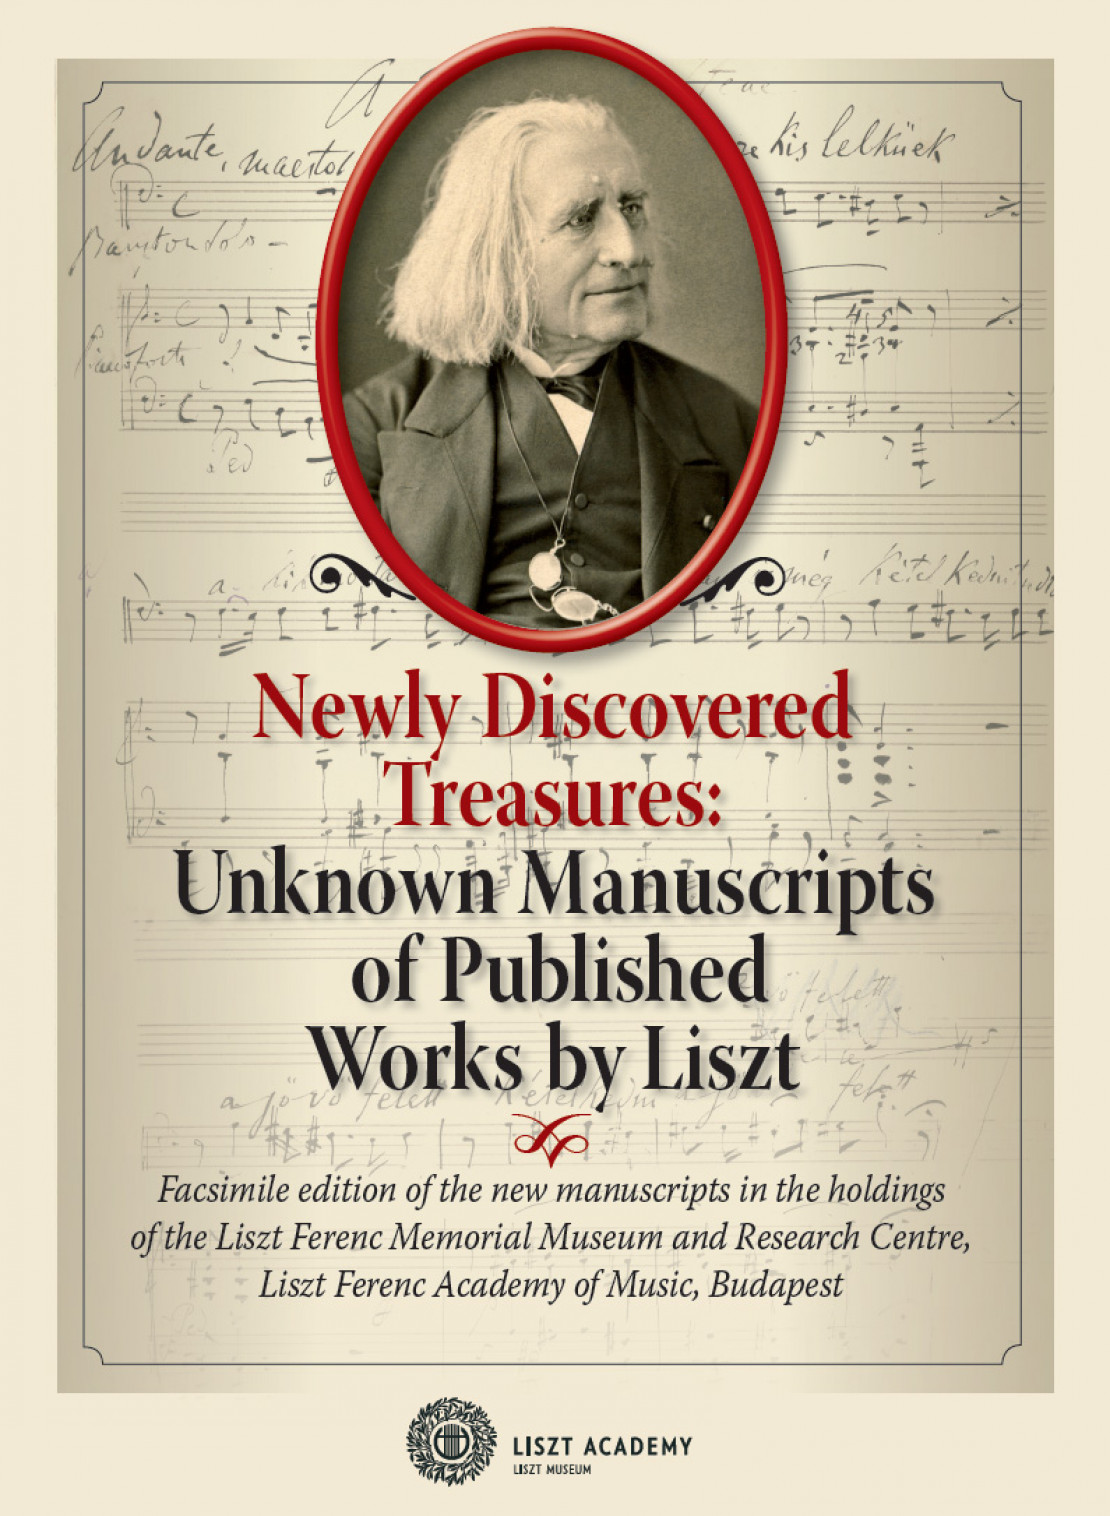 New facsimile edition of Liszt's compositions